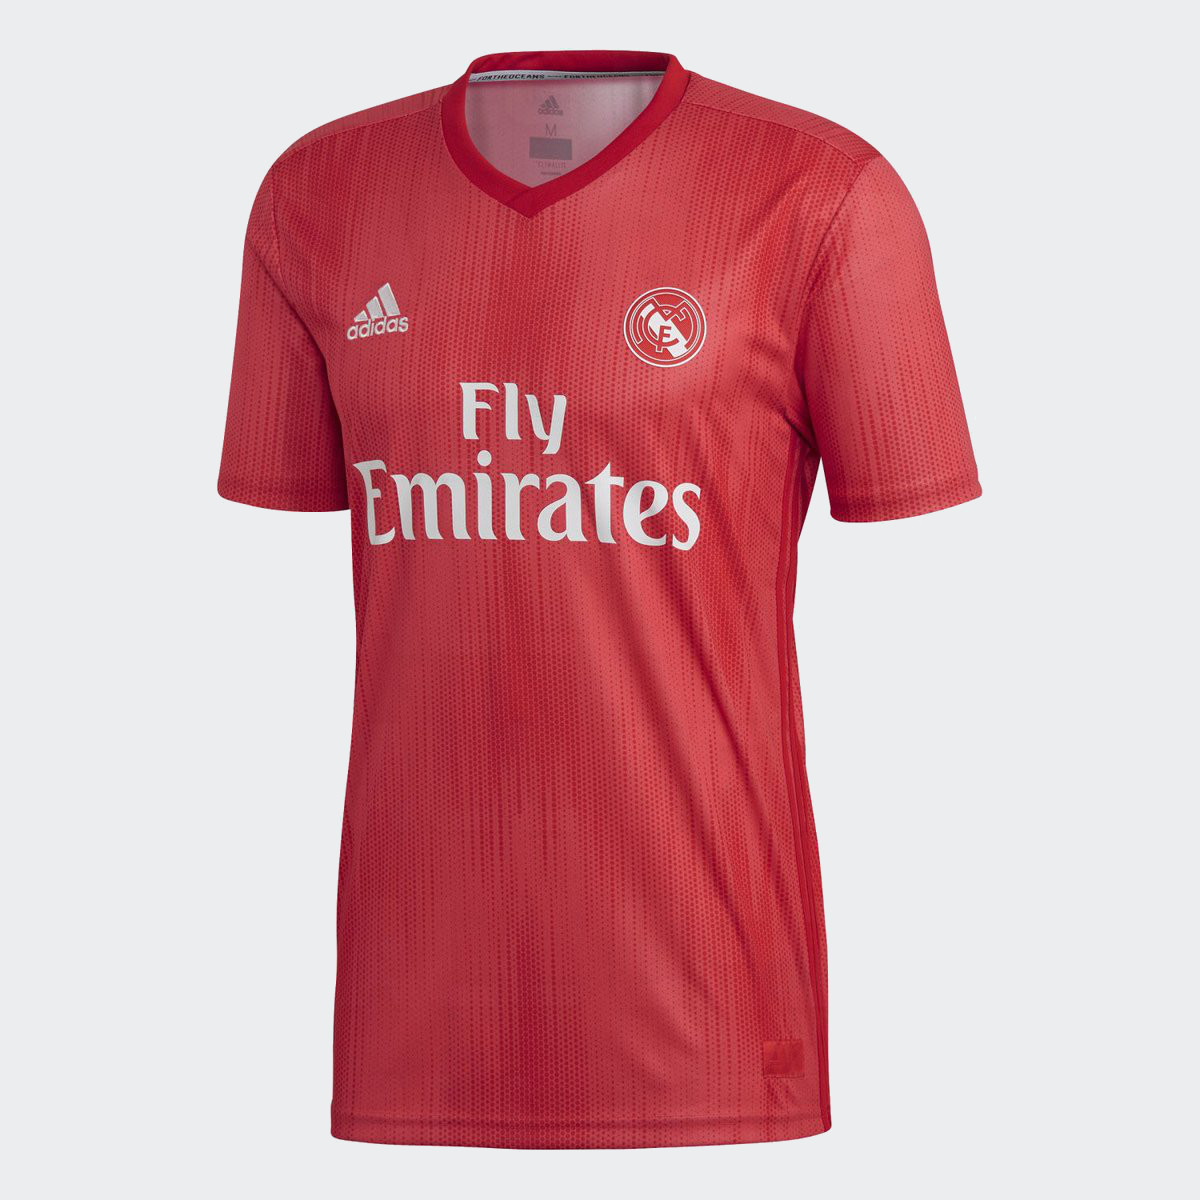 Real Madrid 2019 maillot football third 18 19